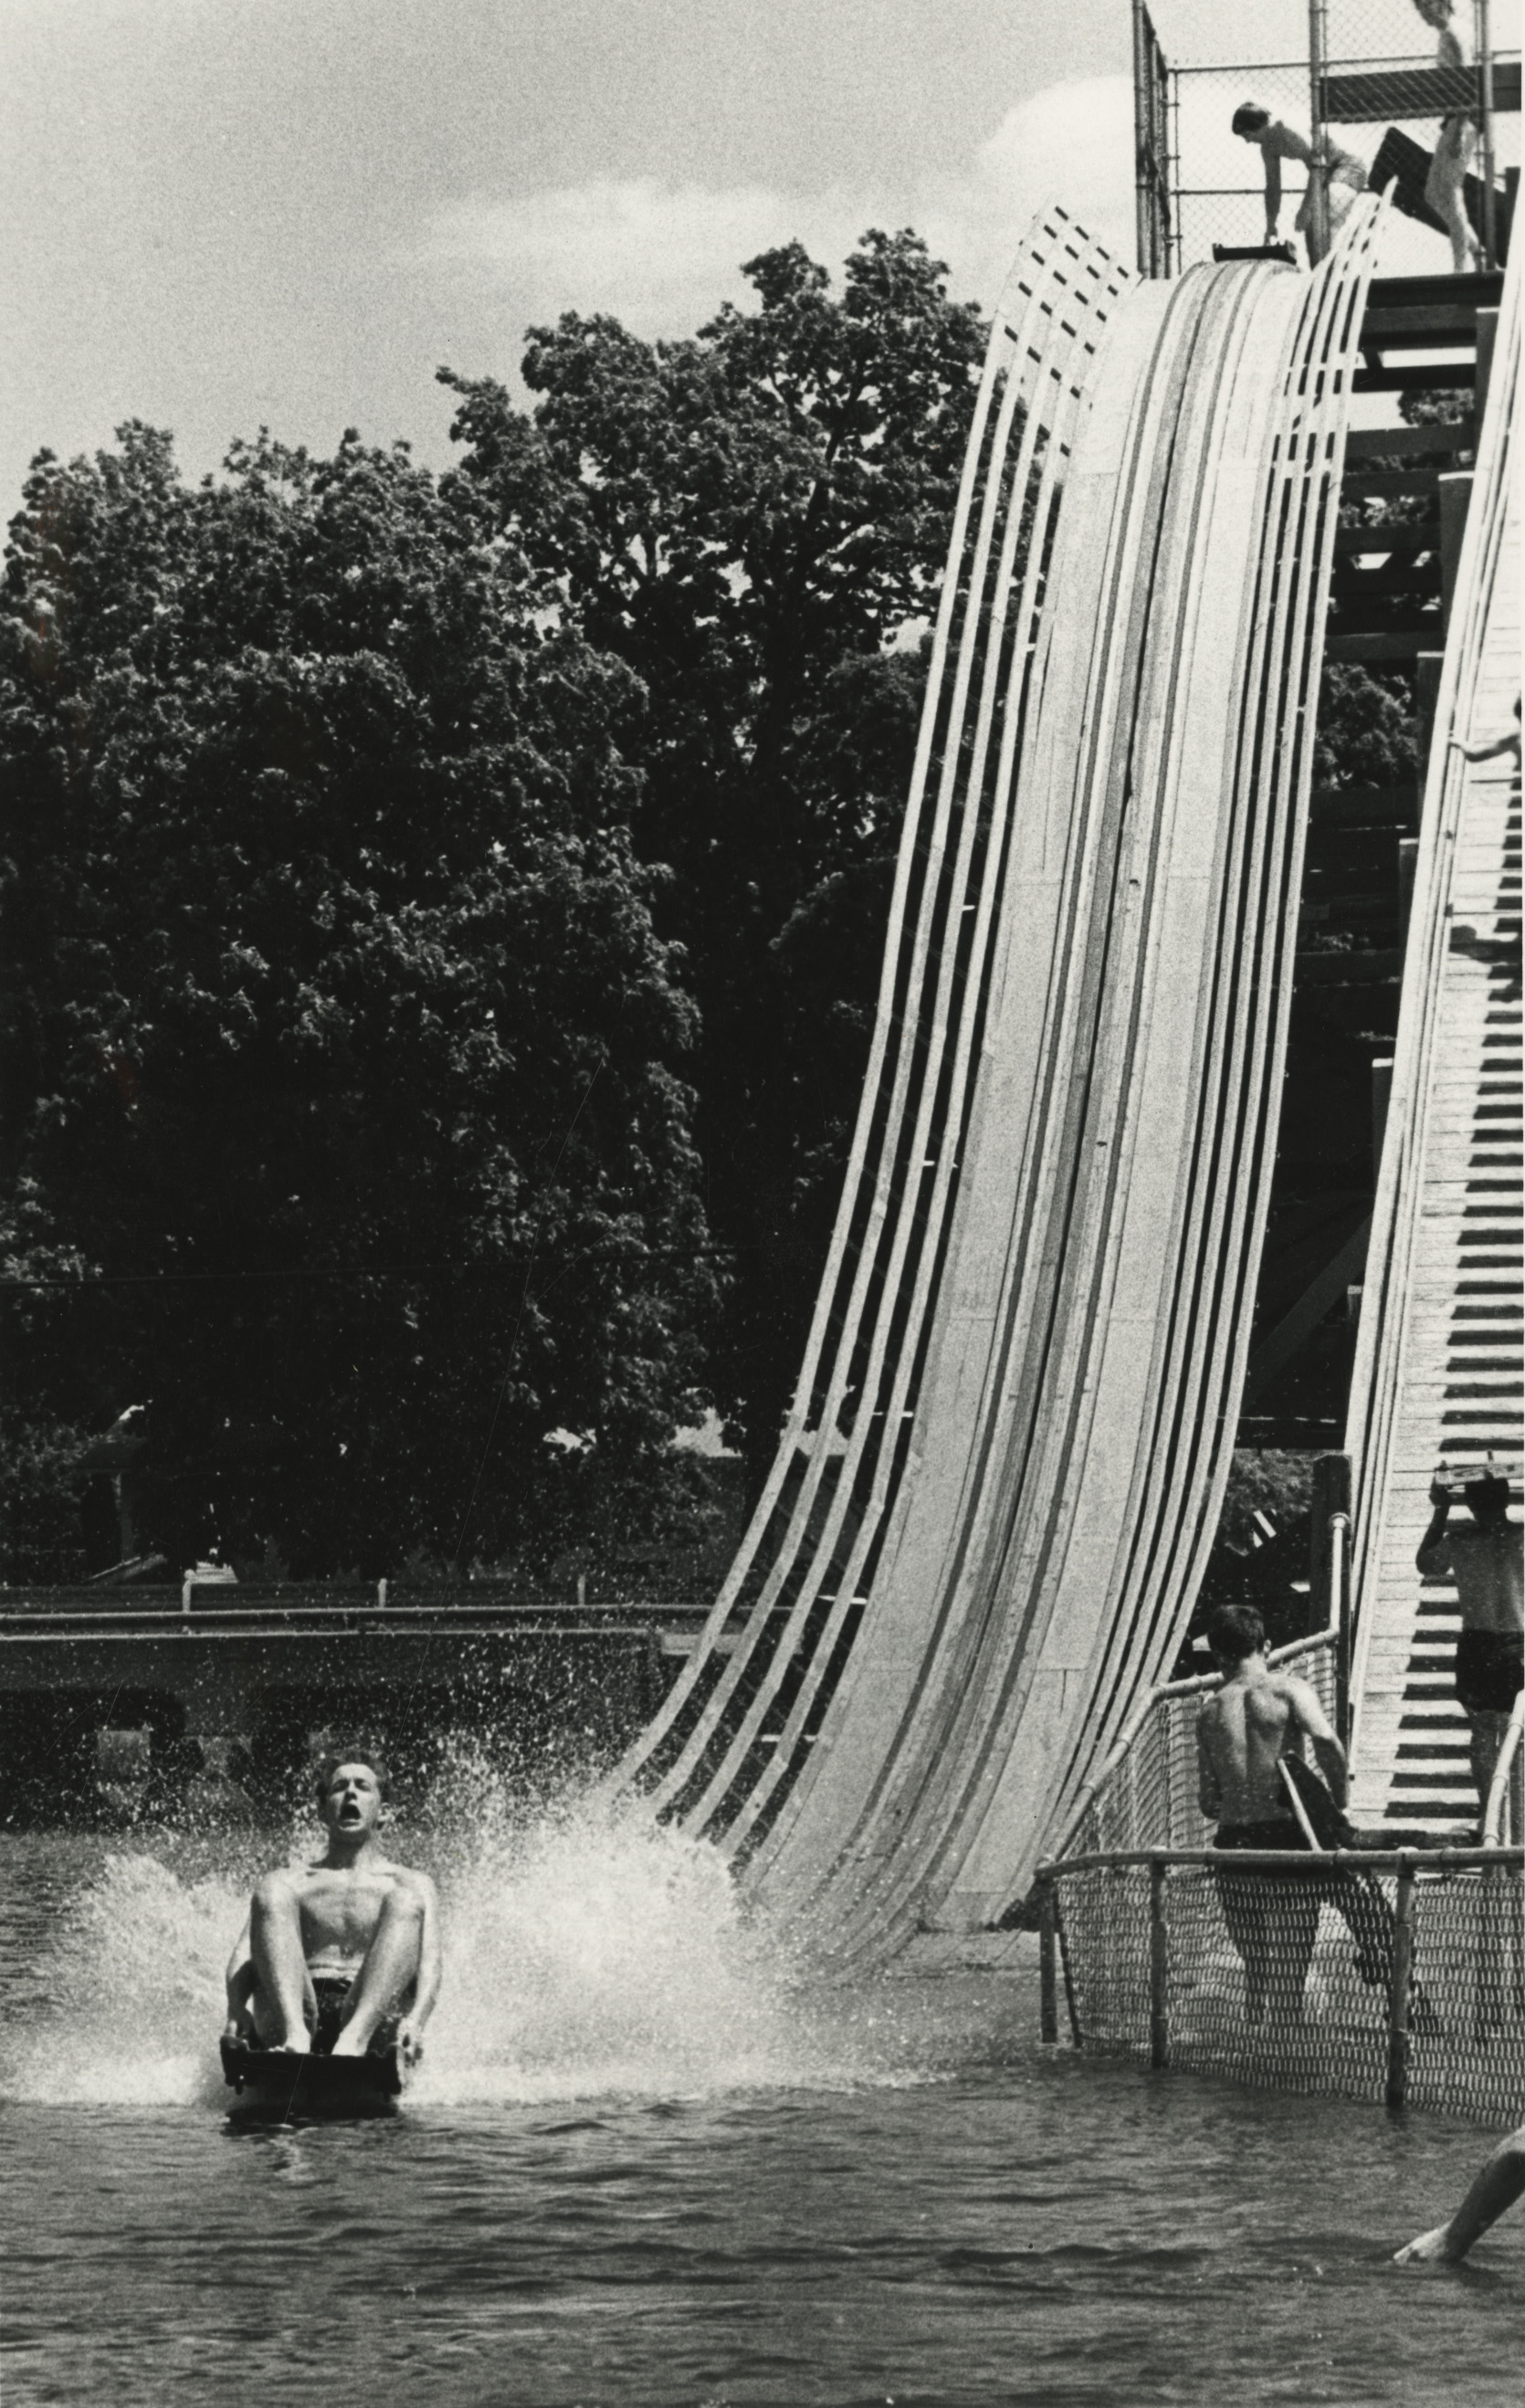 """""""Many area residents took advantage of Saturday's summer weather for a day in the park. The giant slide at Lake of the Woods Park in Mahomet was one well-used attraction during the hot afternoon."""" Urbana Courier, June 4, 1978 (Photo courtesy of the Champaign County Historical Archives, Urbana Free Library)"""